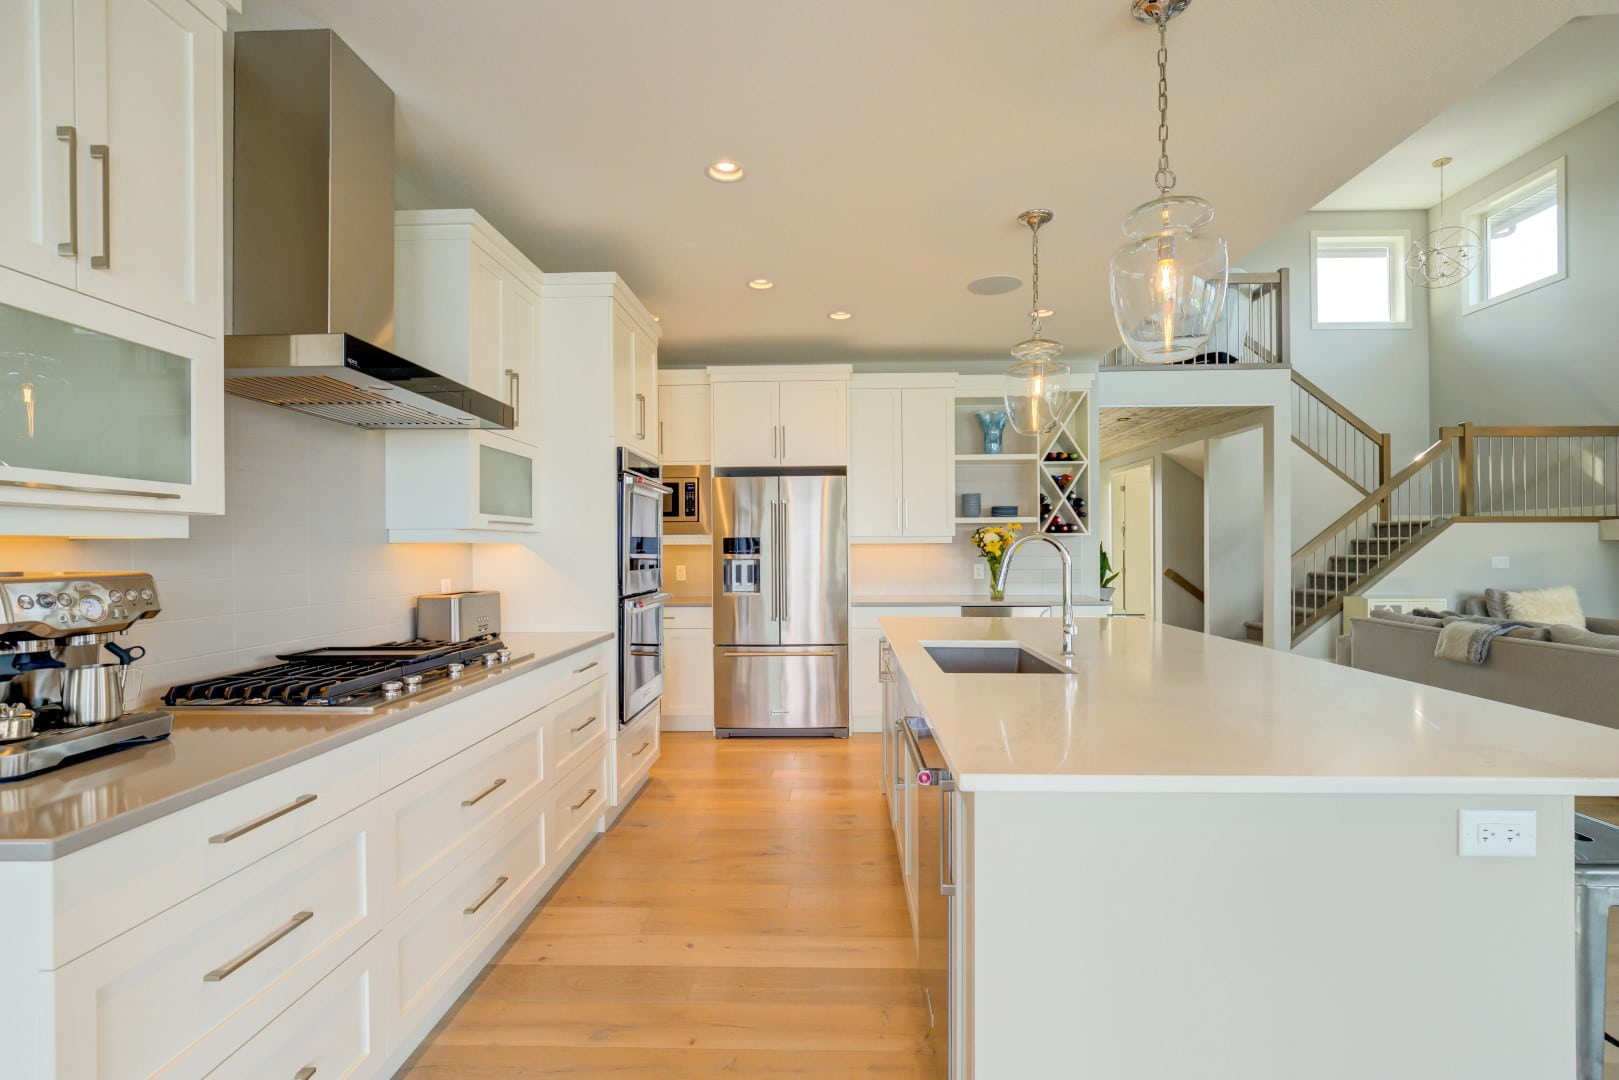 Rocky Point Wilden, Lozinski (16), Open Kitchen Layouts